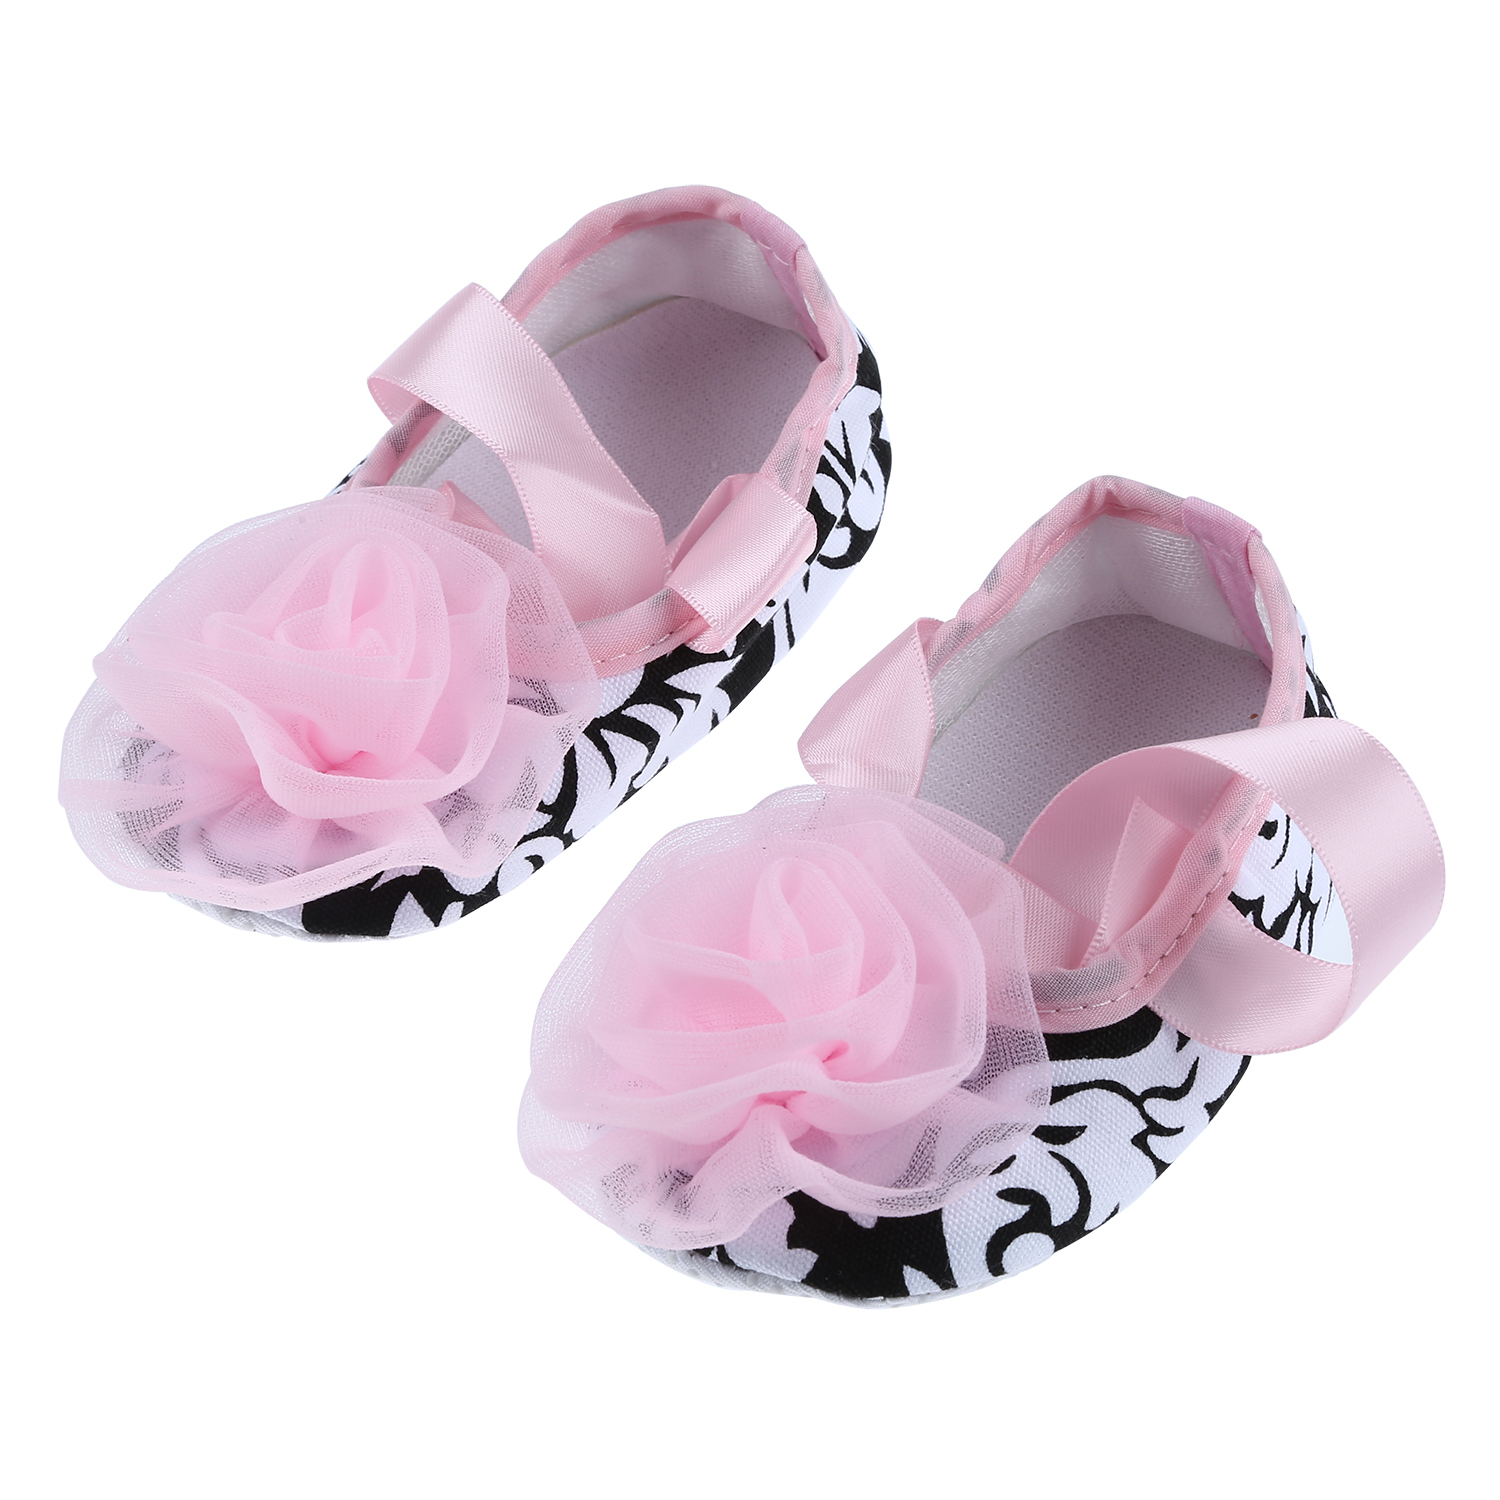 2x toddler infant baby shoes soft soles non slip pink